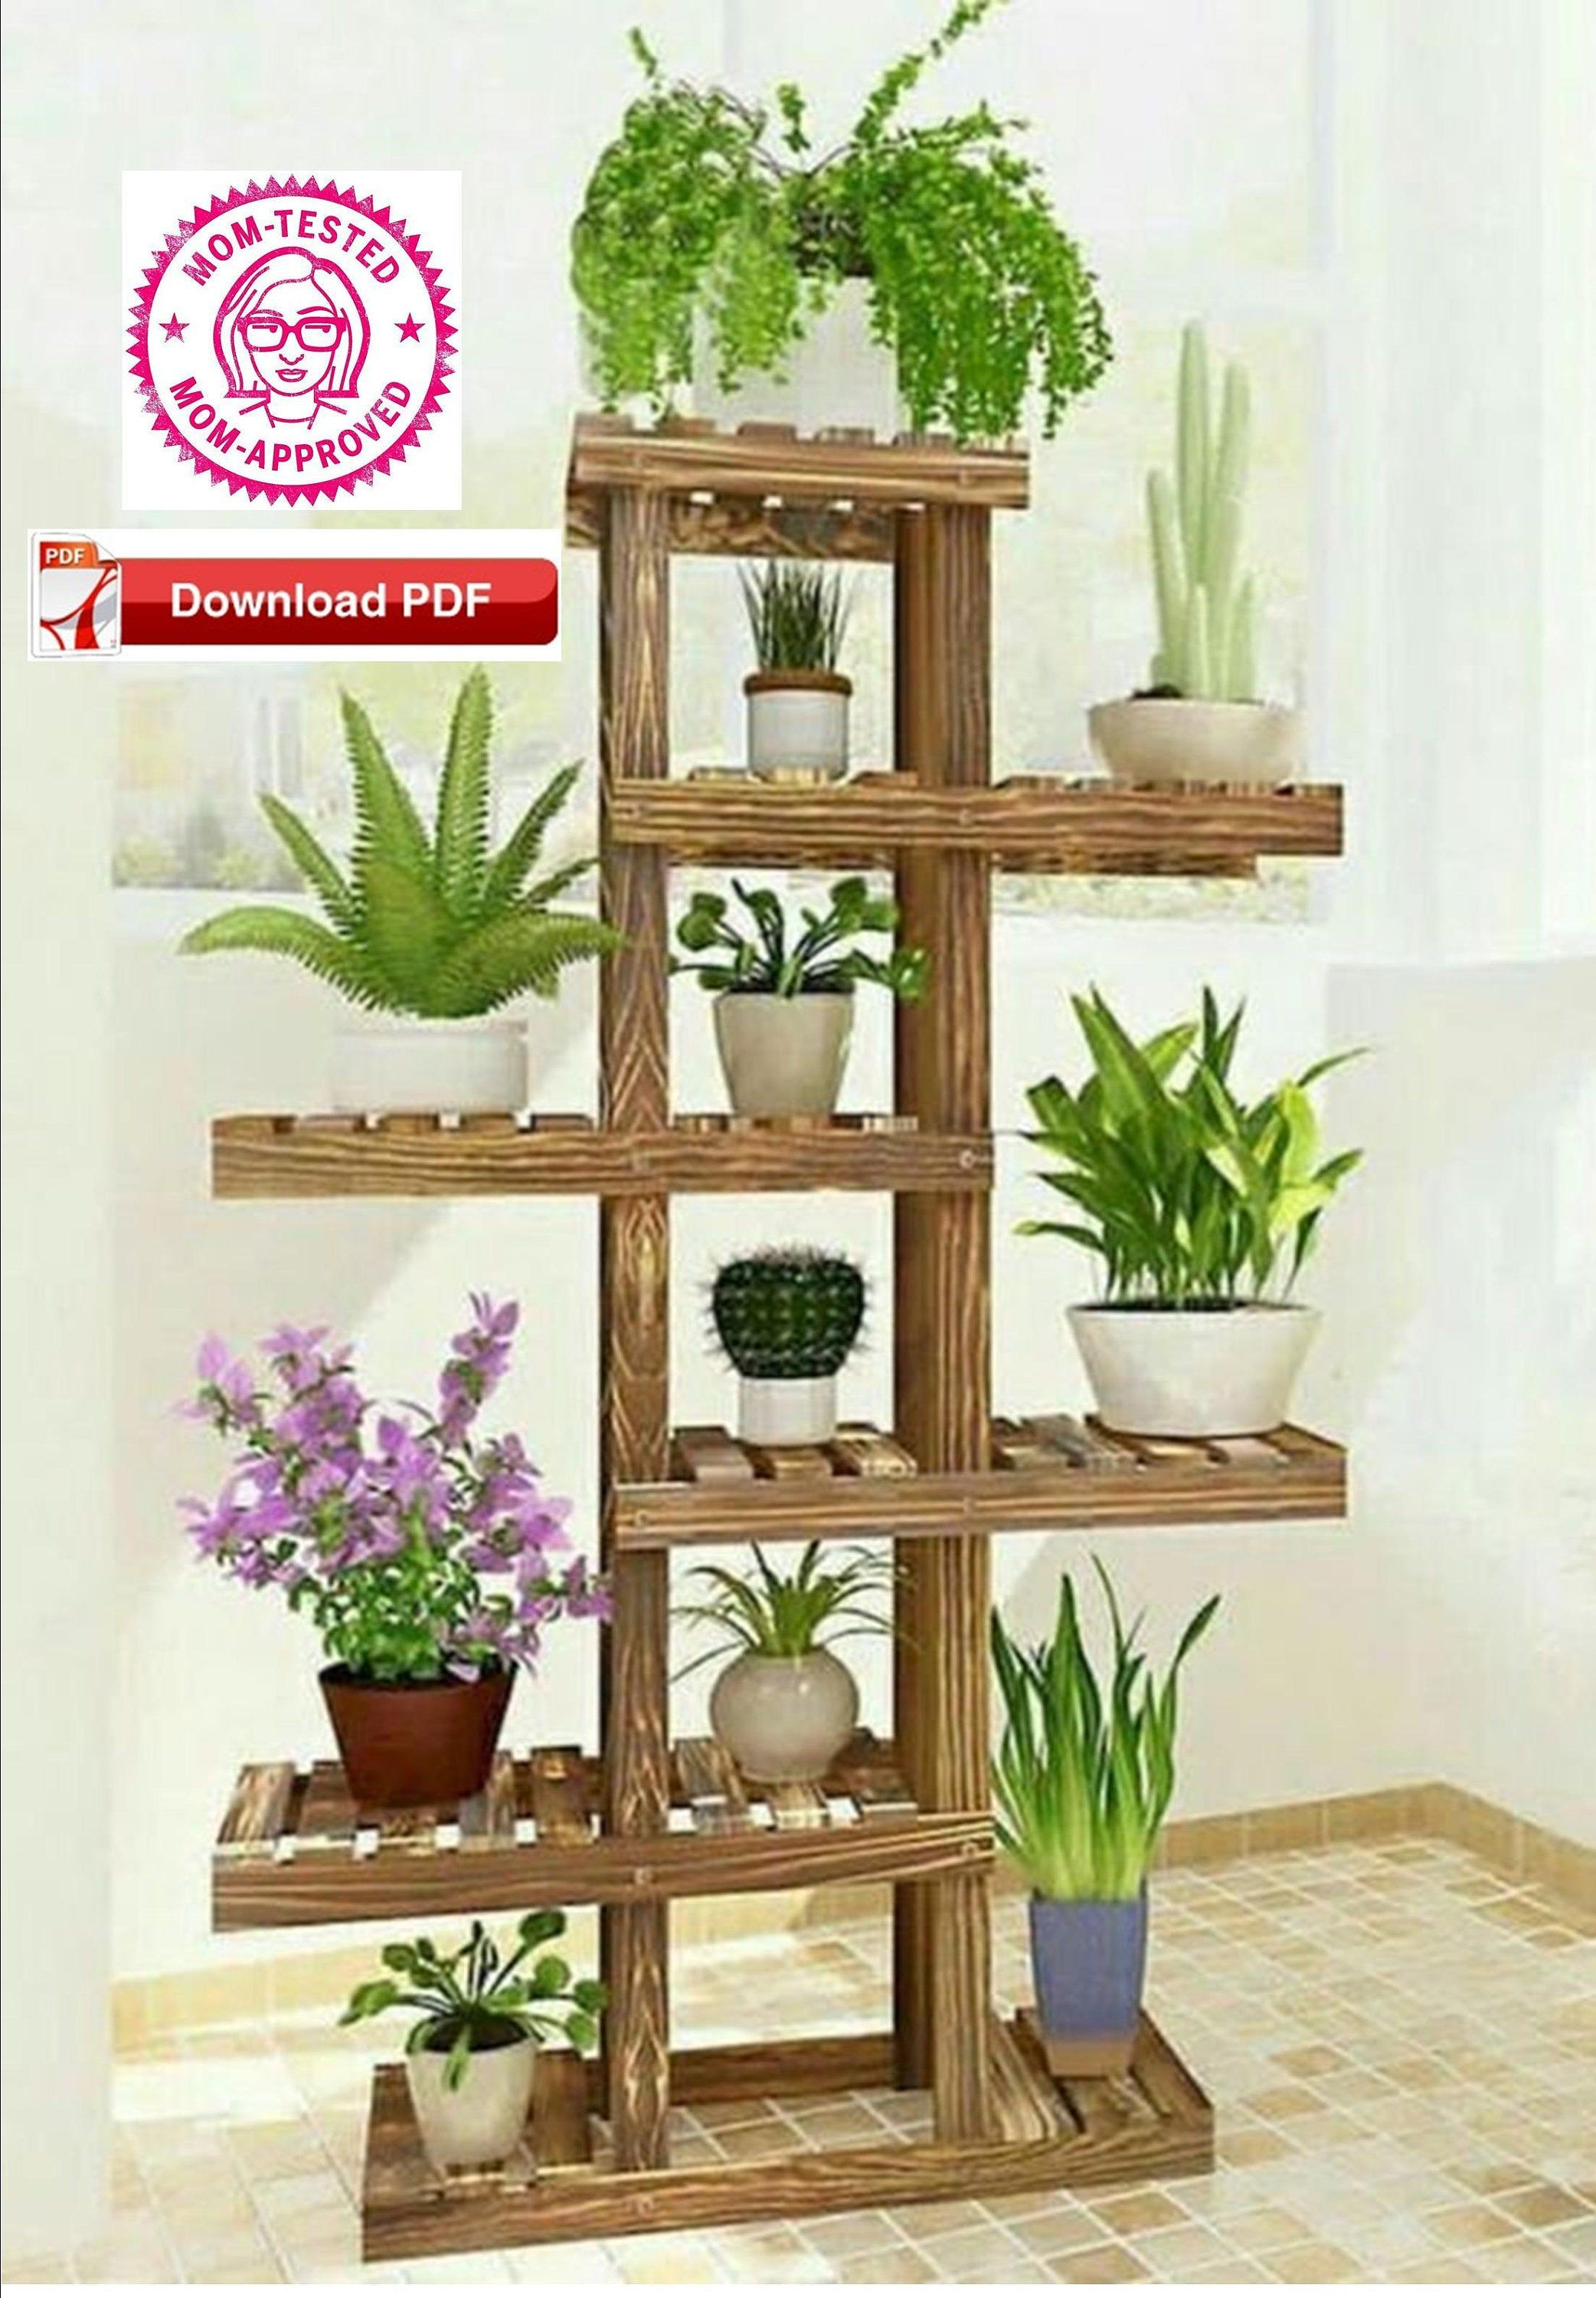 Tall Plant Stand Plan Wood Plant Stand Plan Plant Stand Plan Flower Stand Plan Flower Holder Plan Plant Holder Plan Pdf Pattern Wood Project In 2021 House Plants Decor Diy Plant Stand Tall Plant Stand